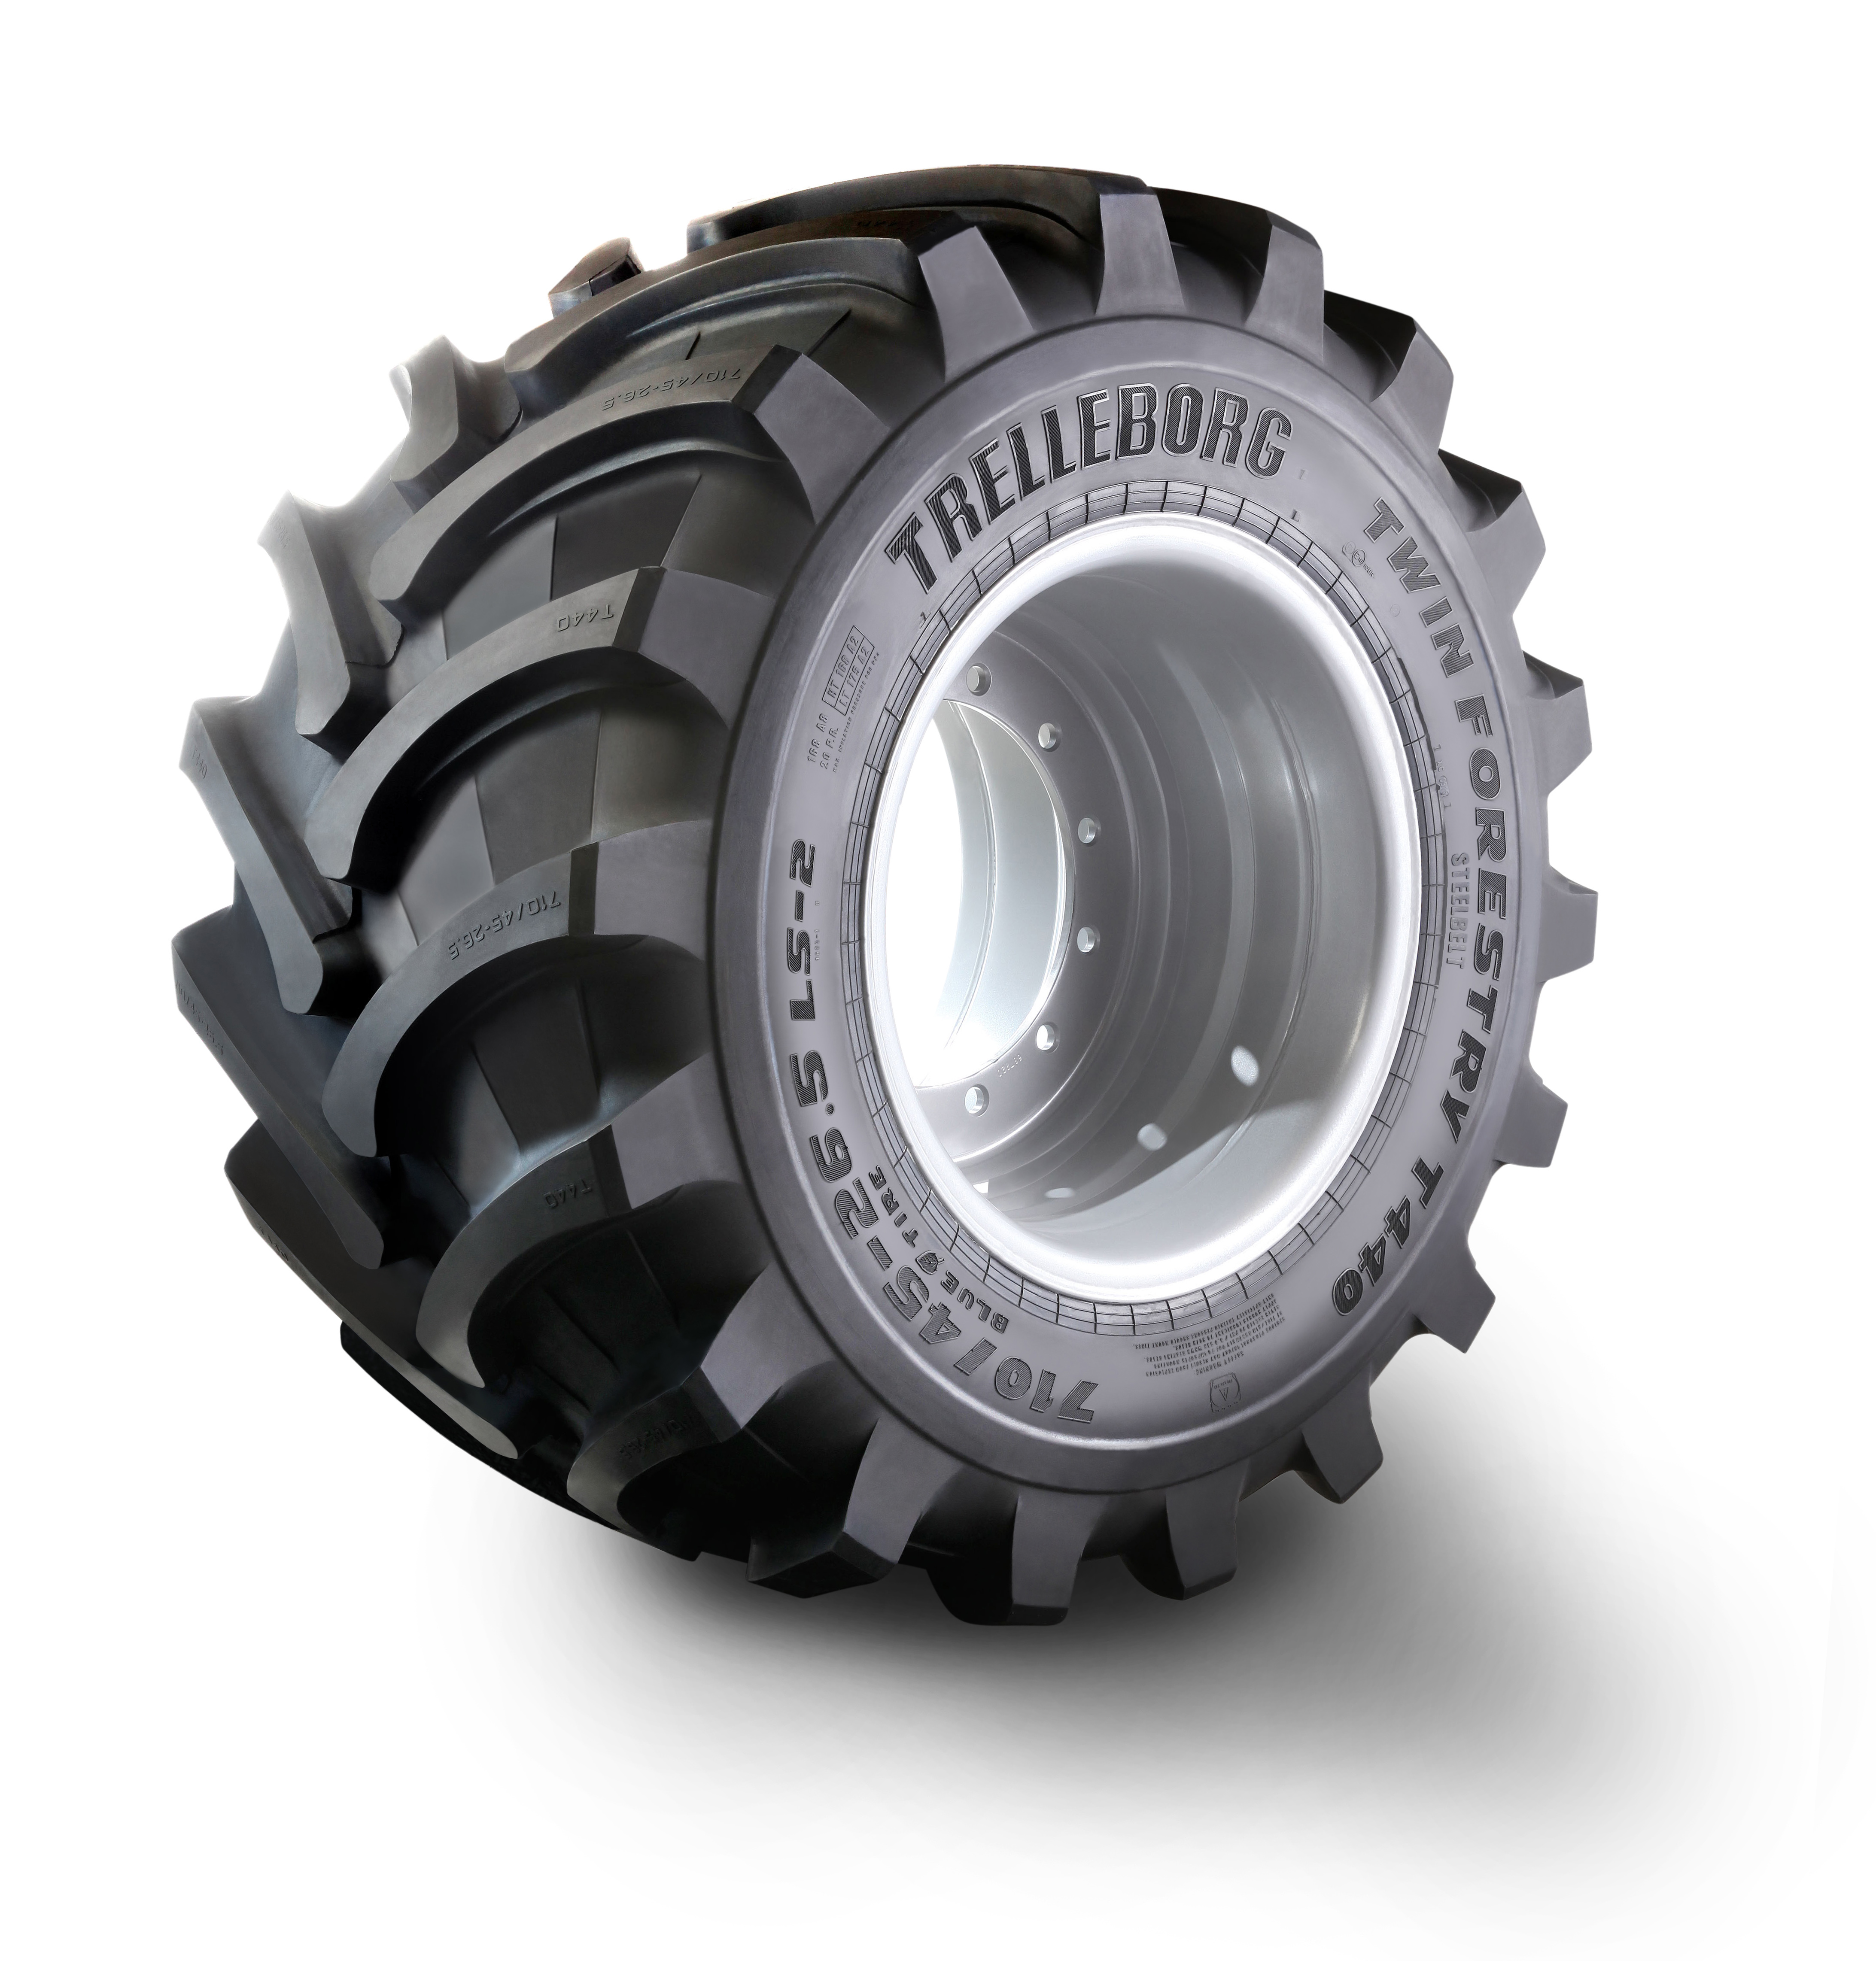 Trelleborg has a new line of forestry tires